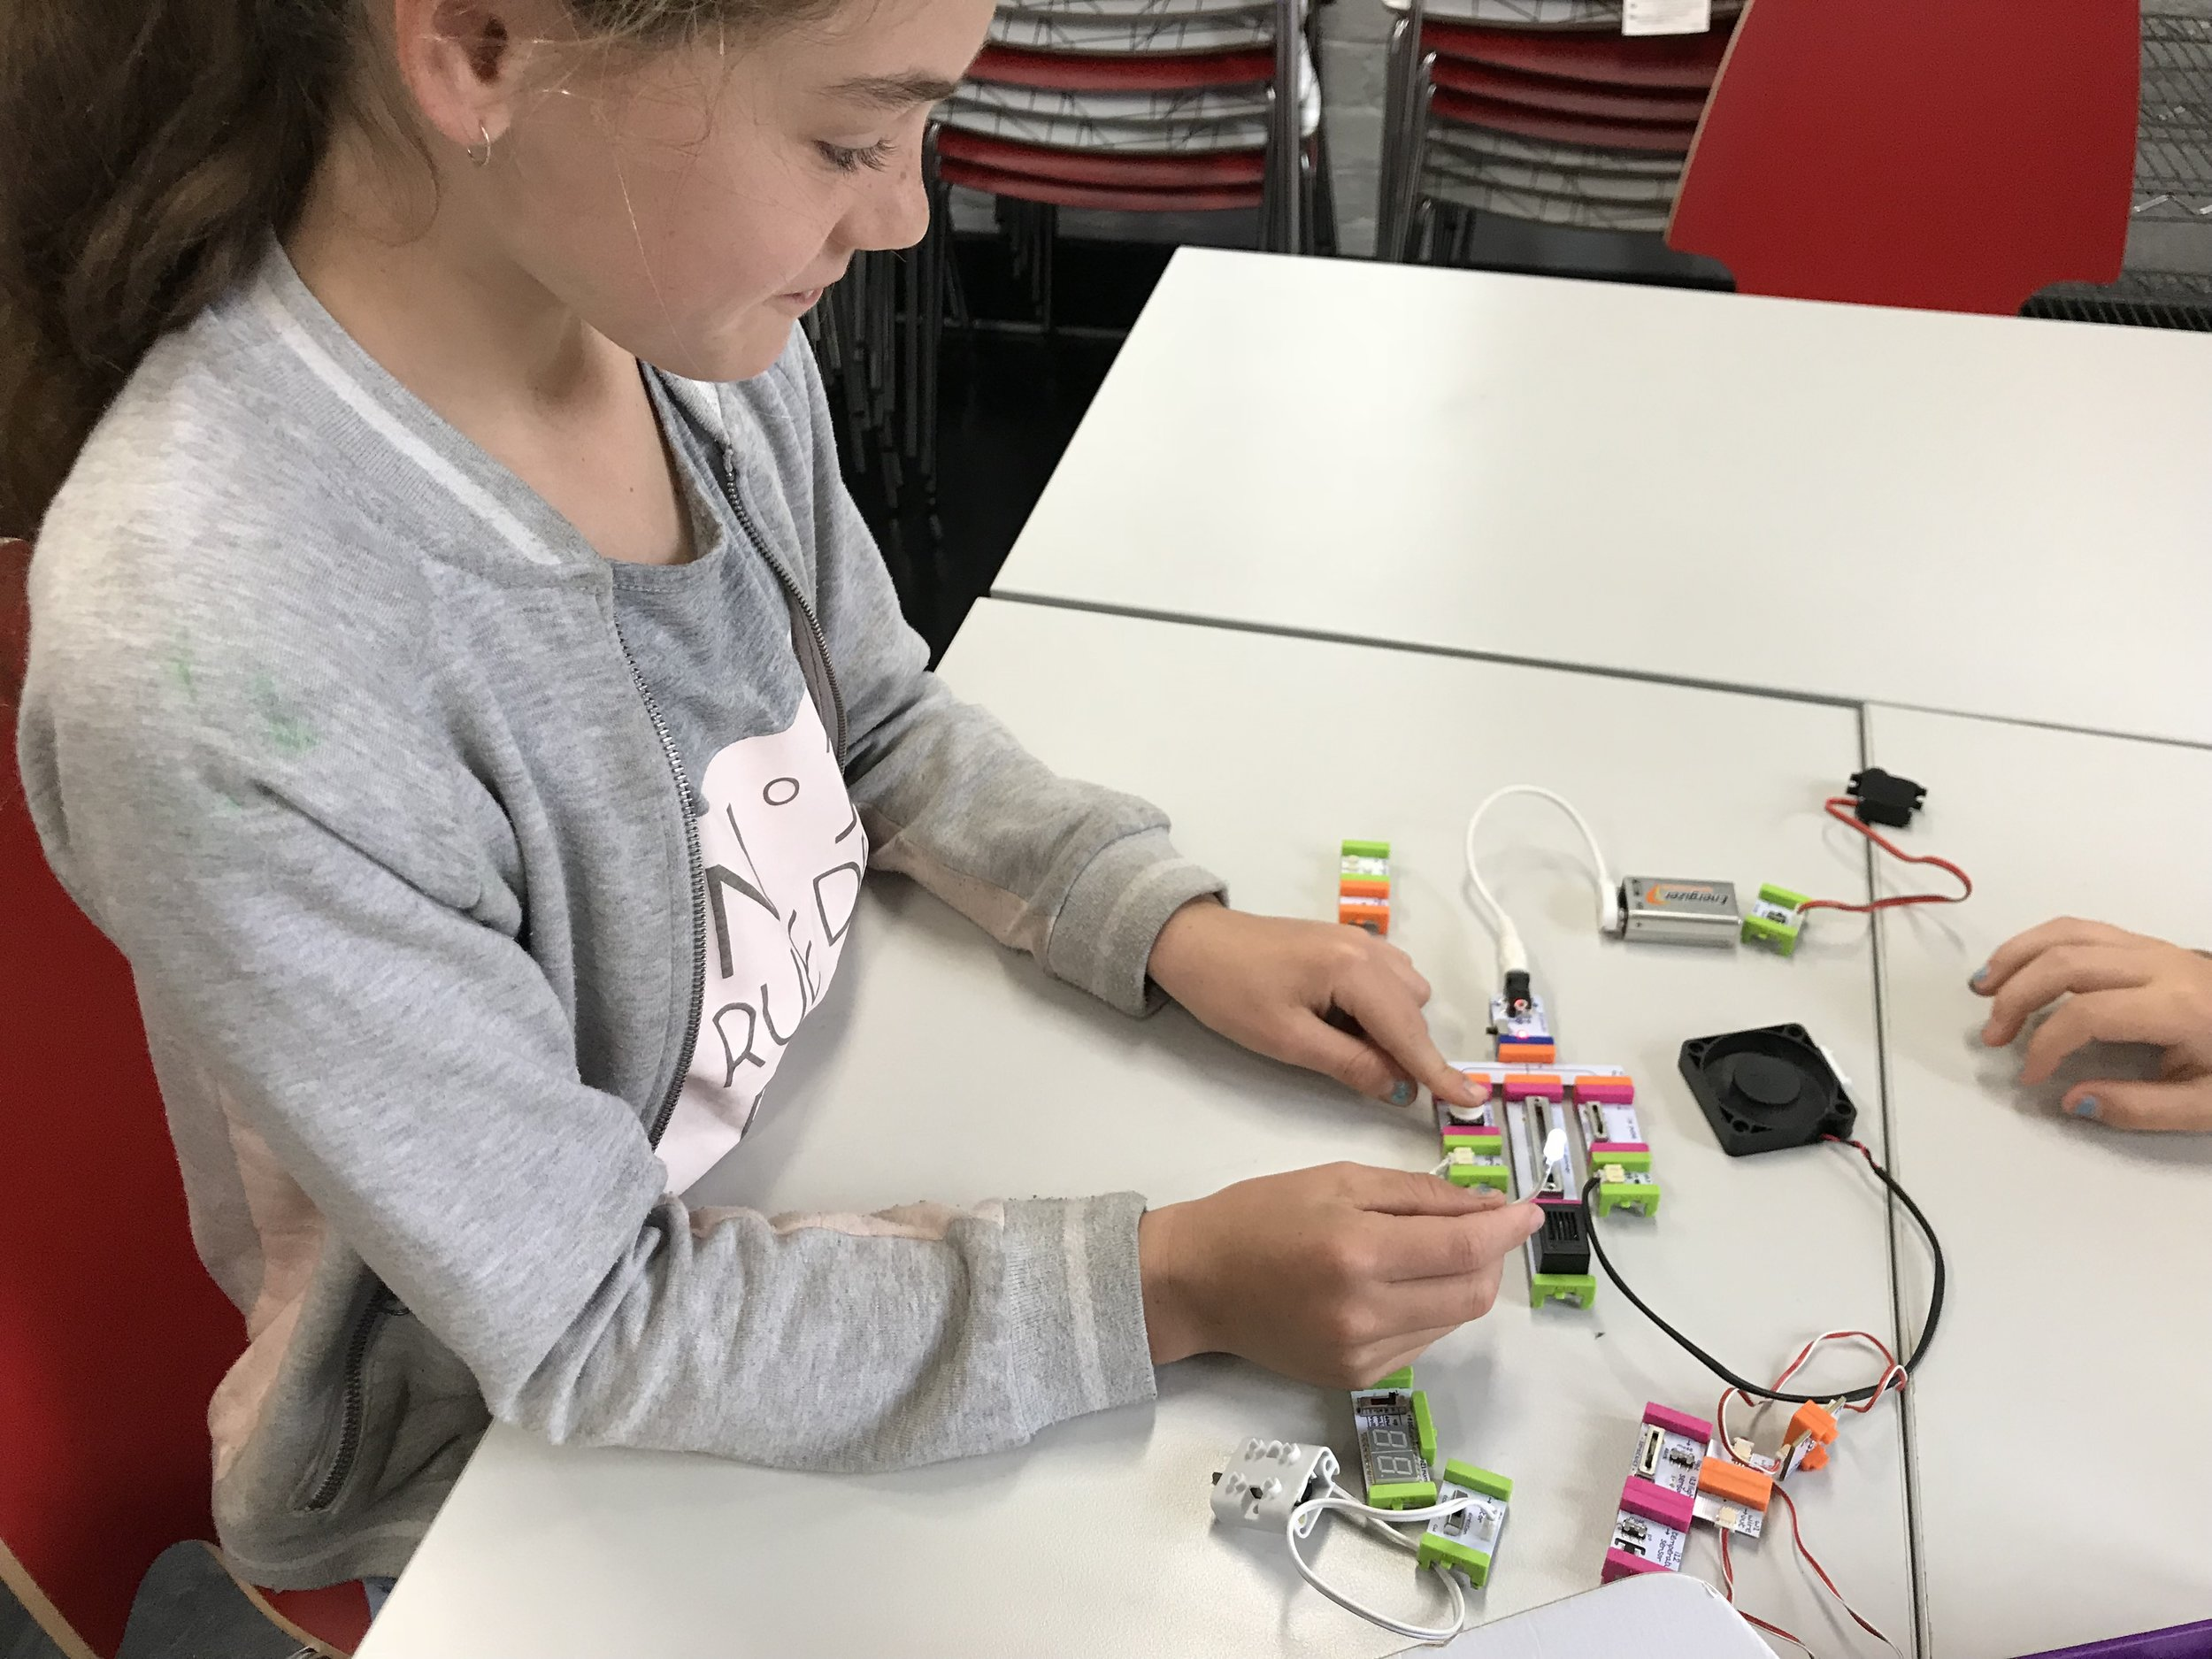 When it comes to creative problem-solving, young people are increasingly excelling. This young engineer made this clear to us last month as part of    MiniSparx   .